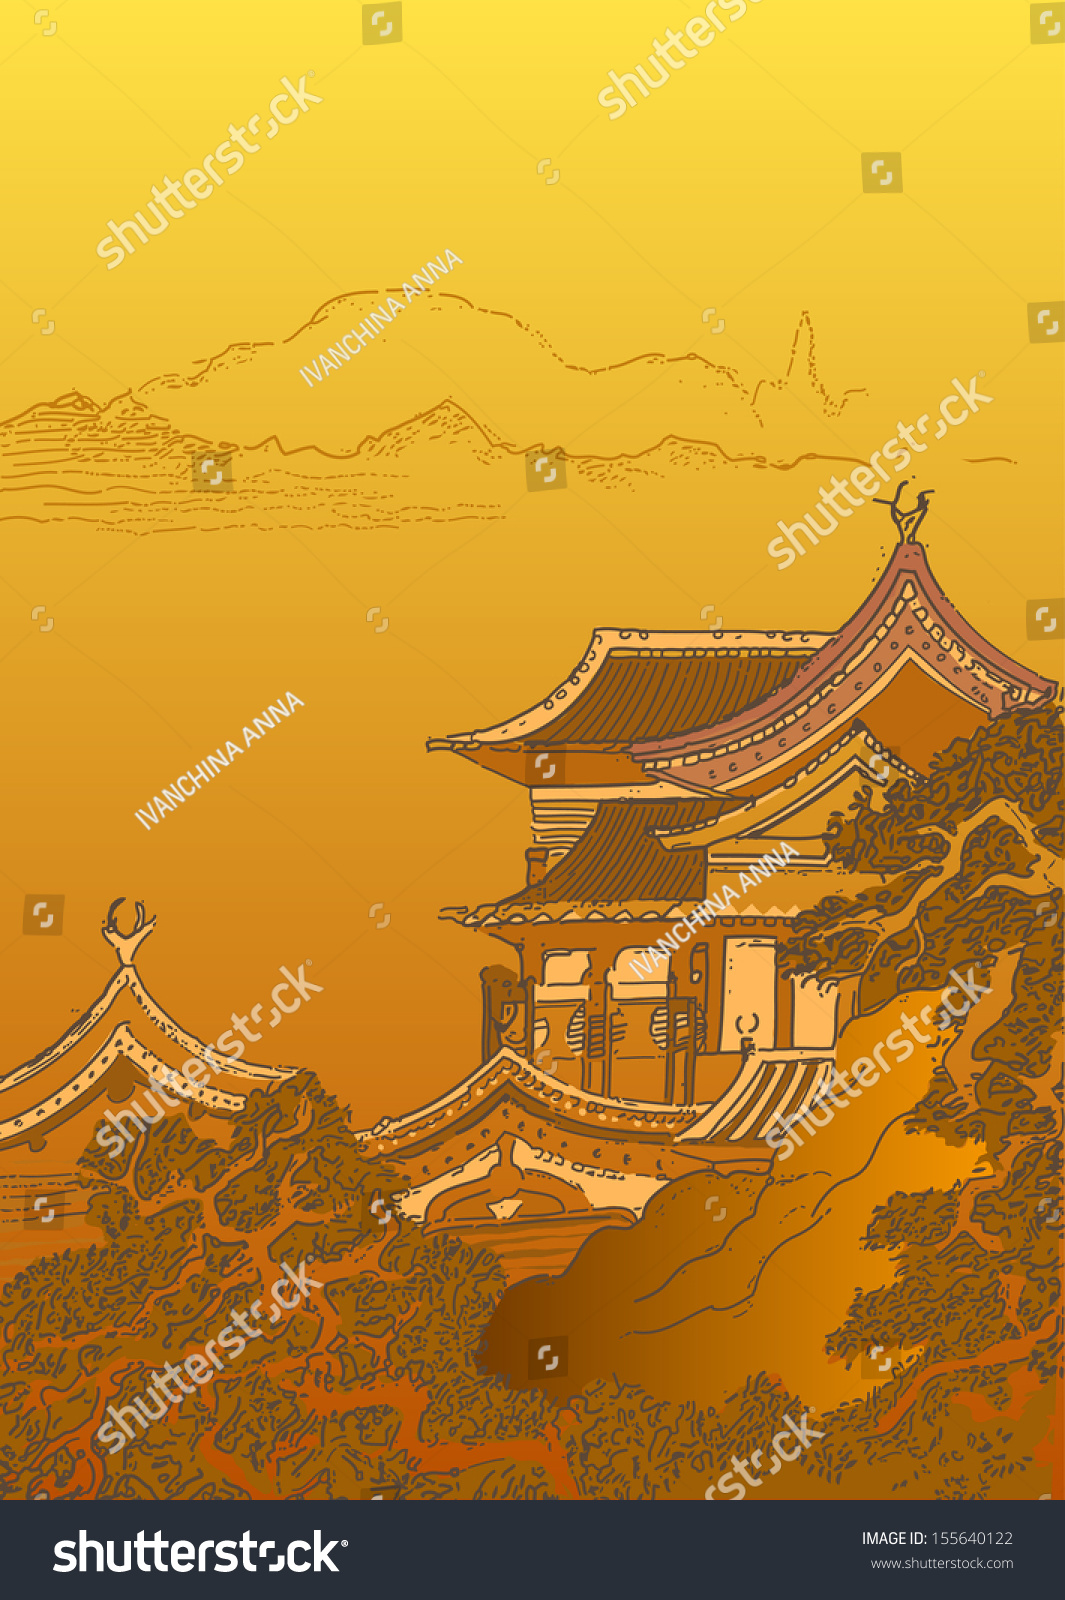 Abstract Chinese Landscape Stock Vector (Royalty Free) 155640122 ...